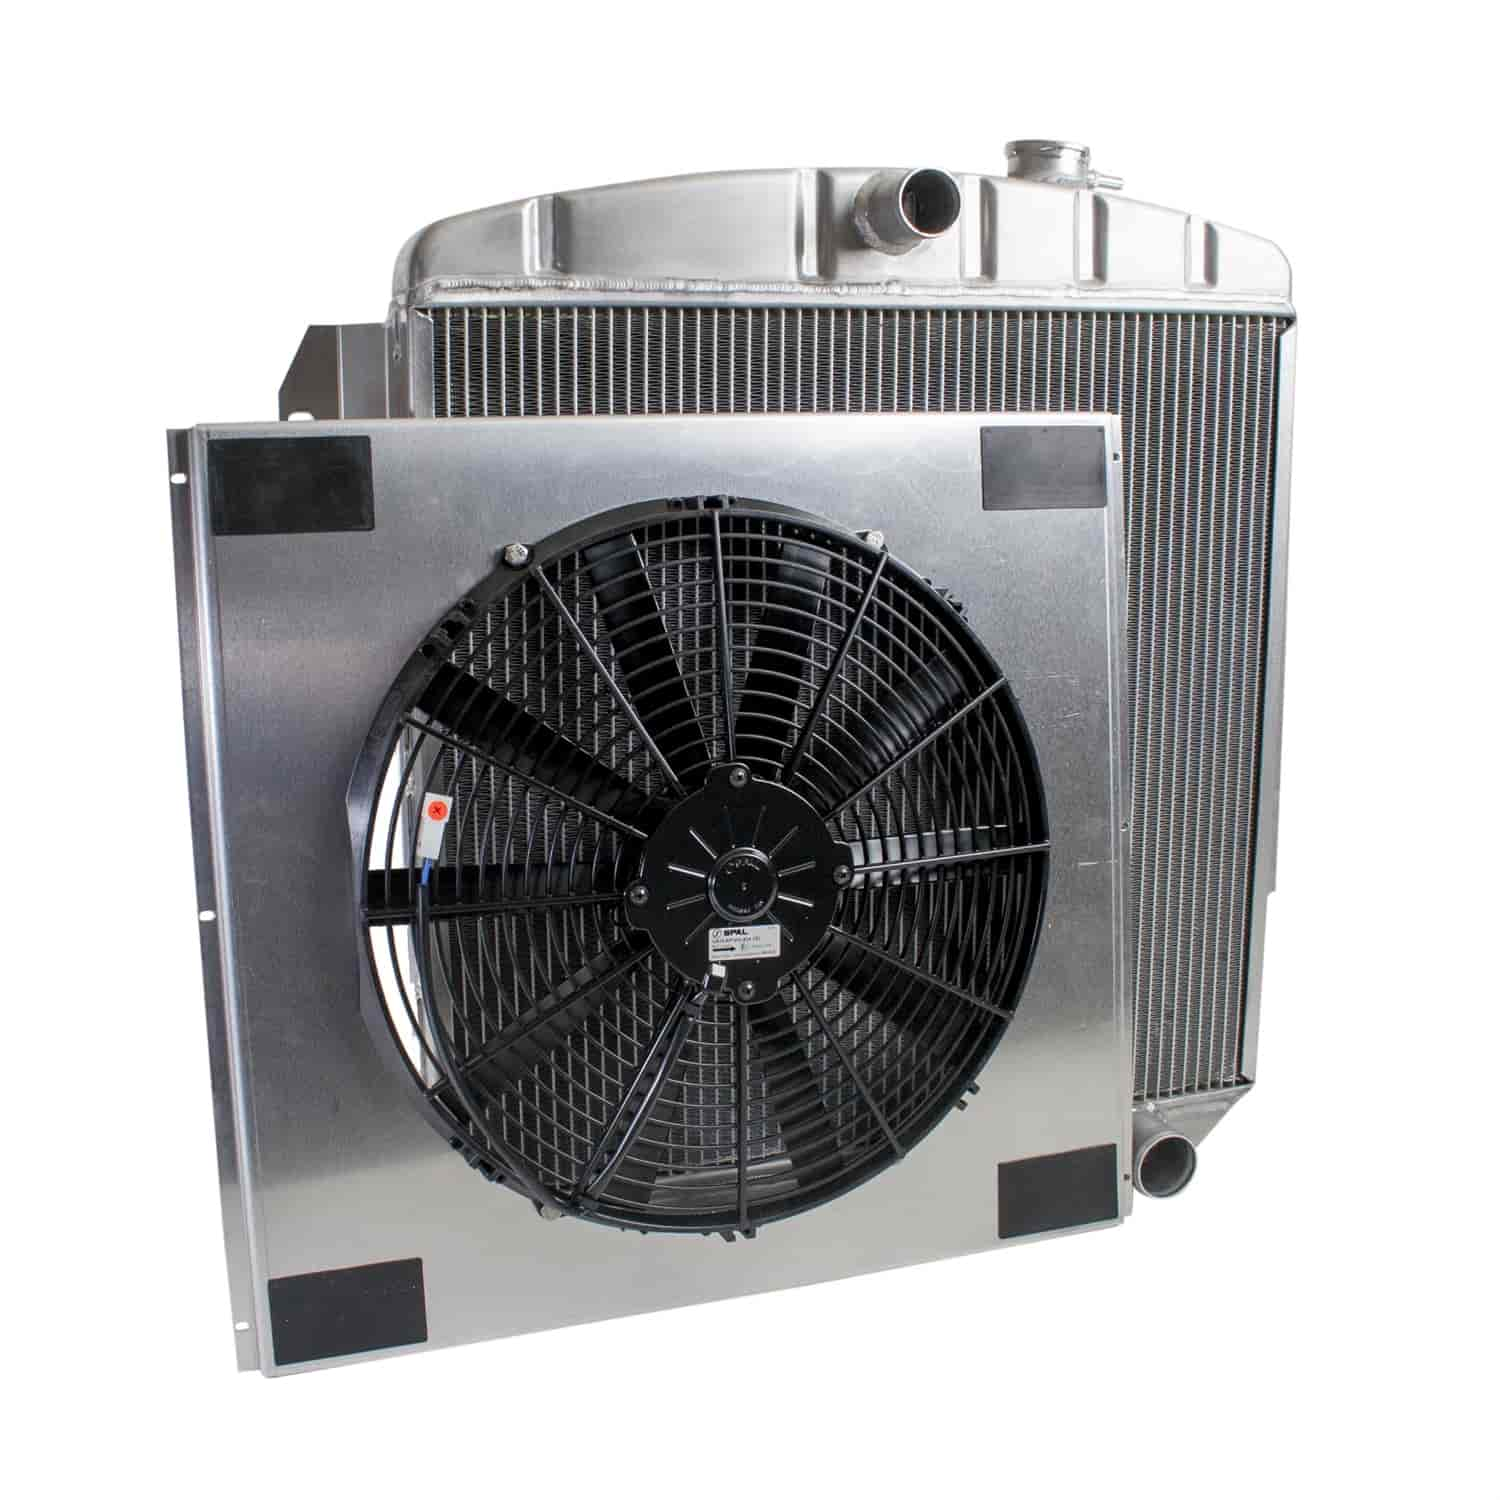 Griffin Radiators CU-00075